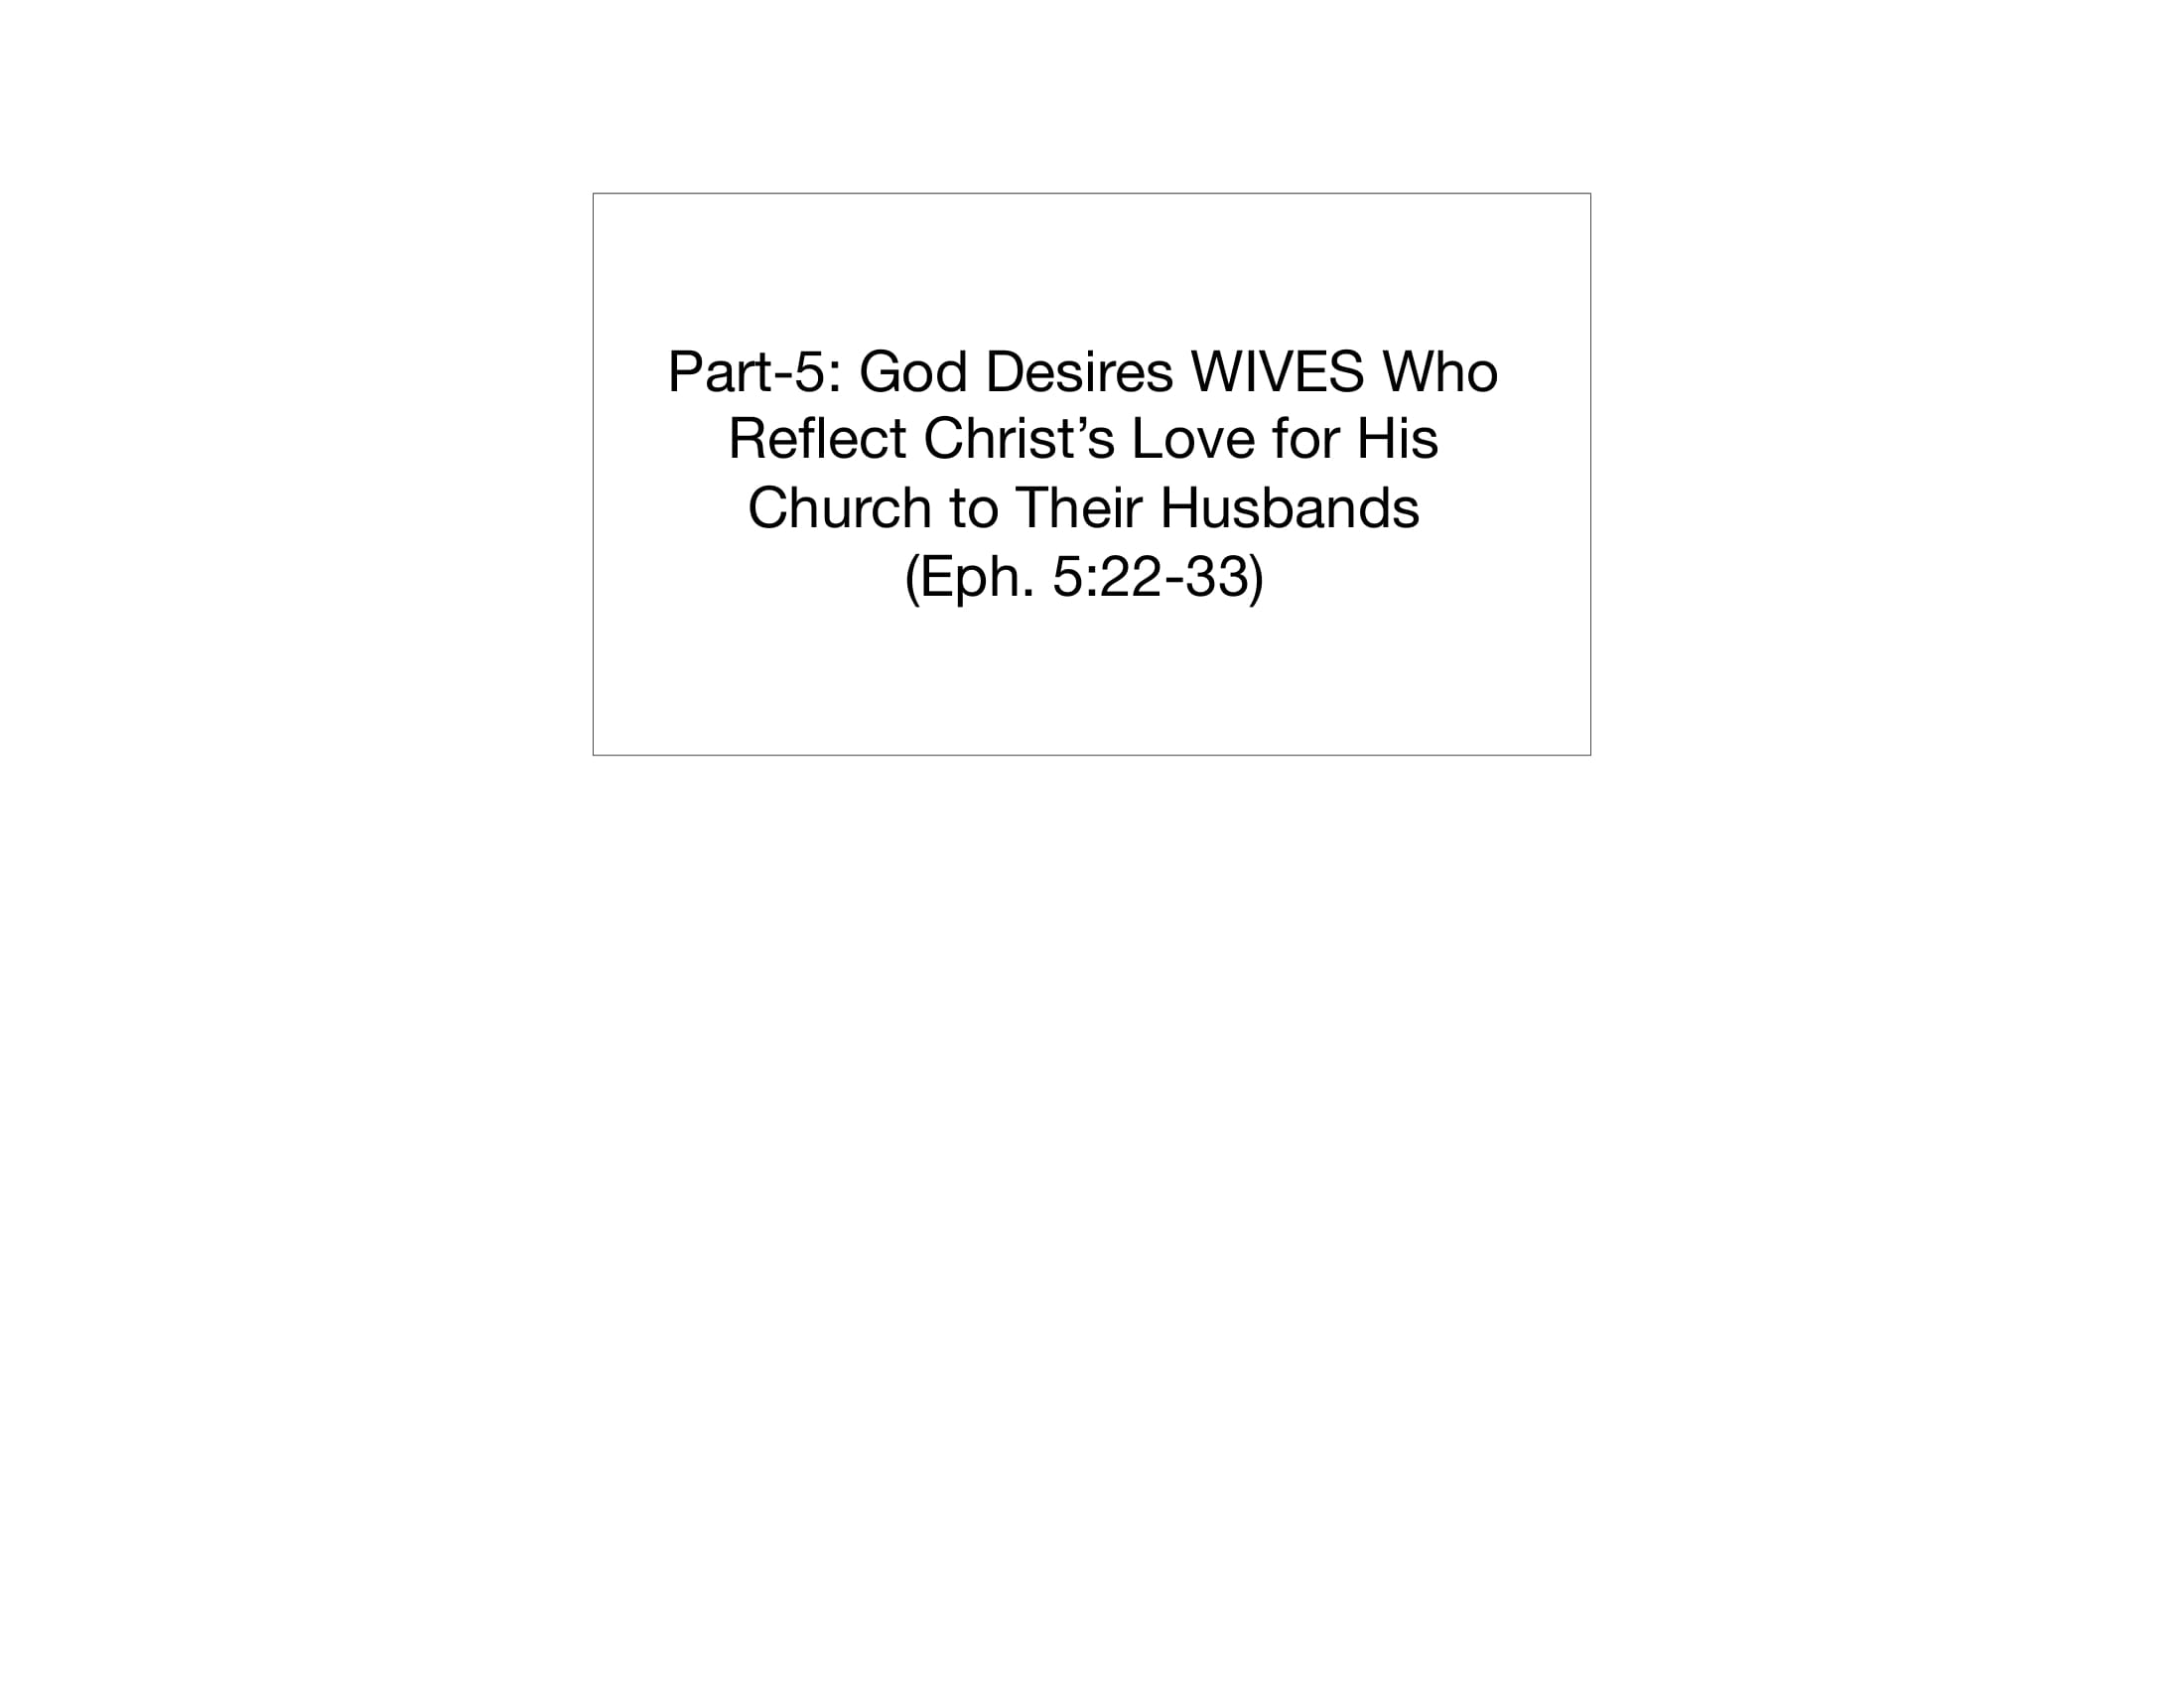 LGI-05 - God Desires Wives Who Reflect Christ's Love To Their Husbands-15